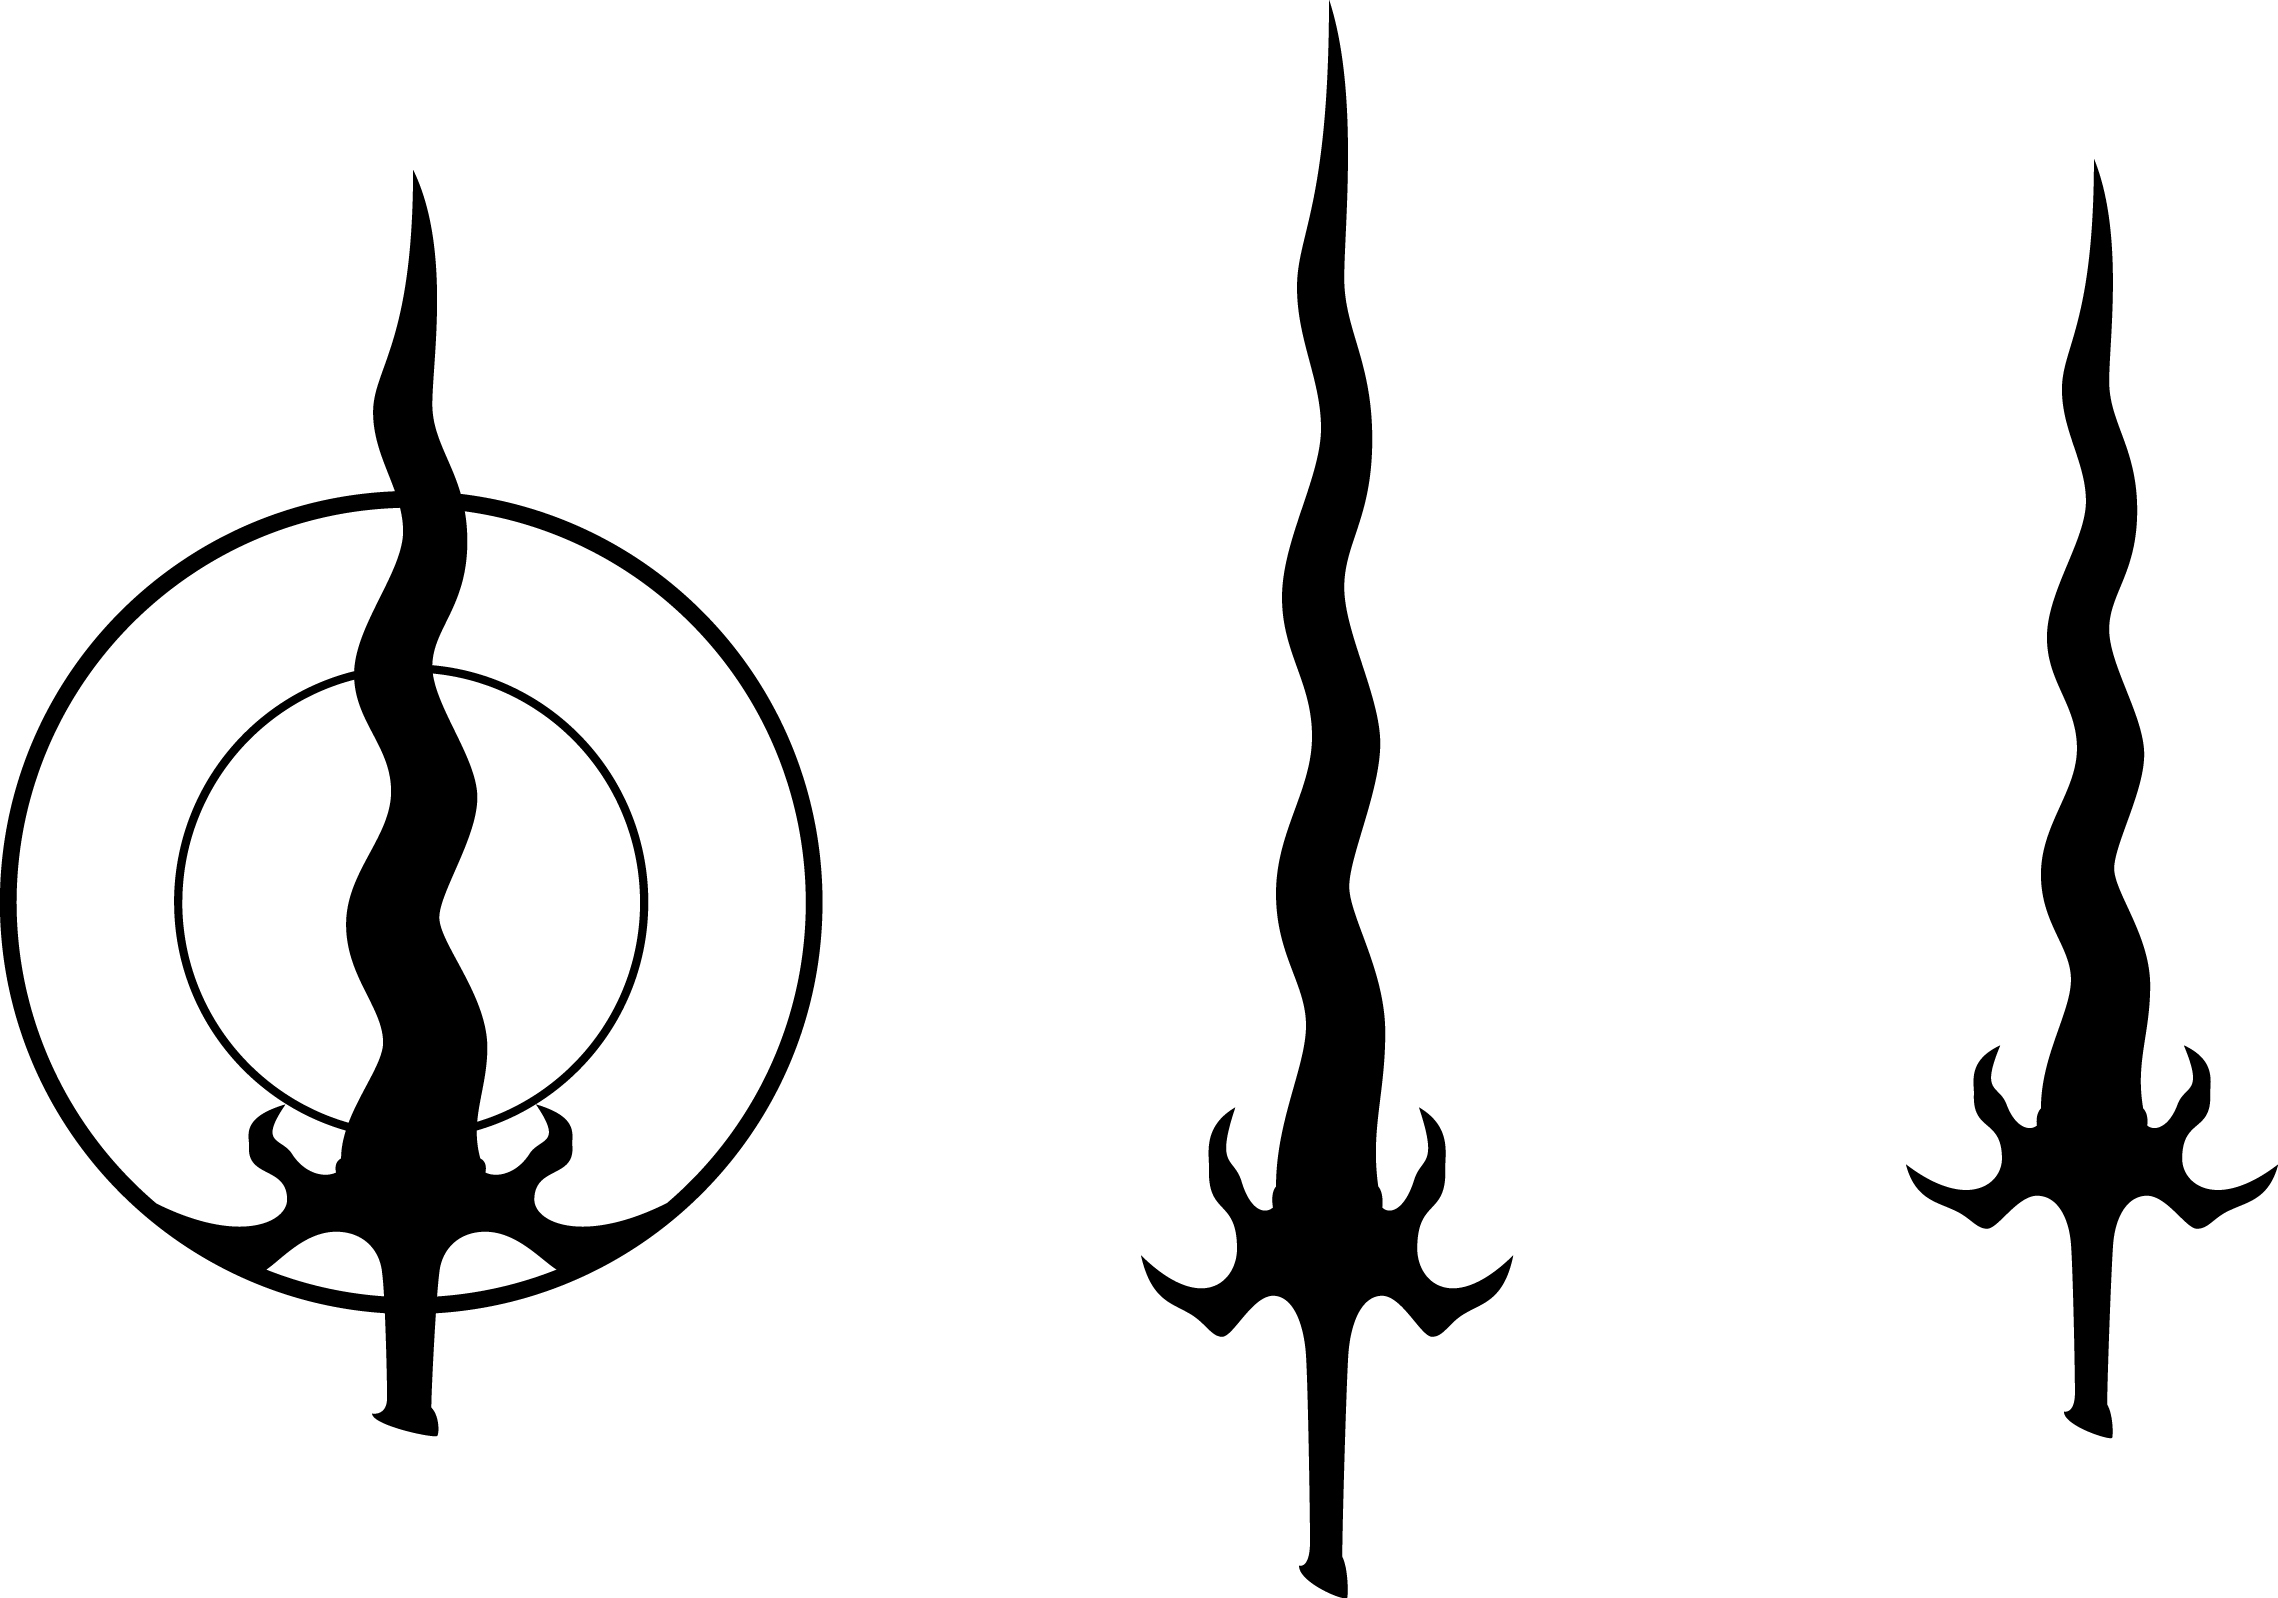 Vampire Clan Symbols Meanings Three Reaver Symbol Variations Picture